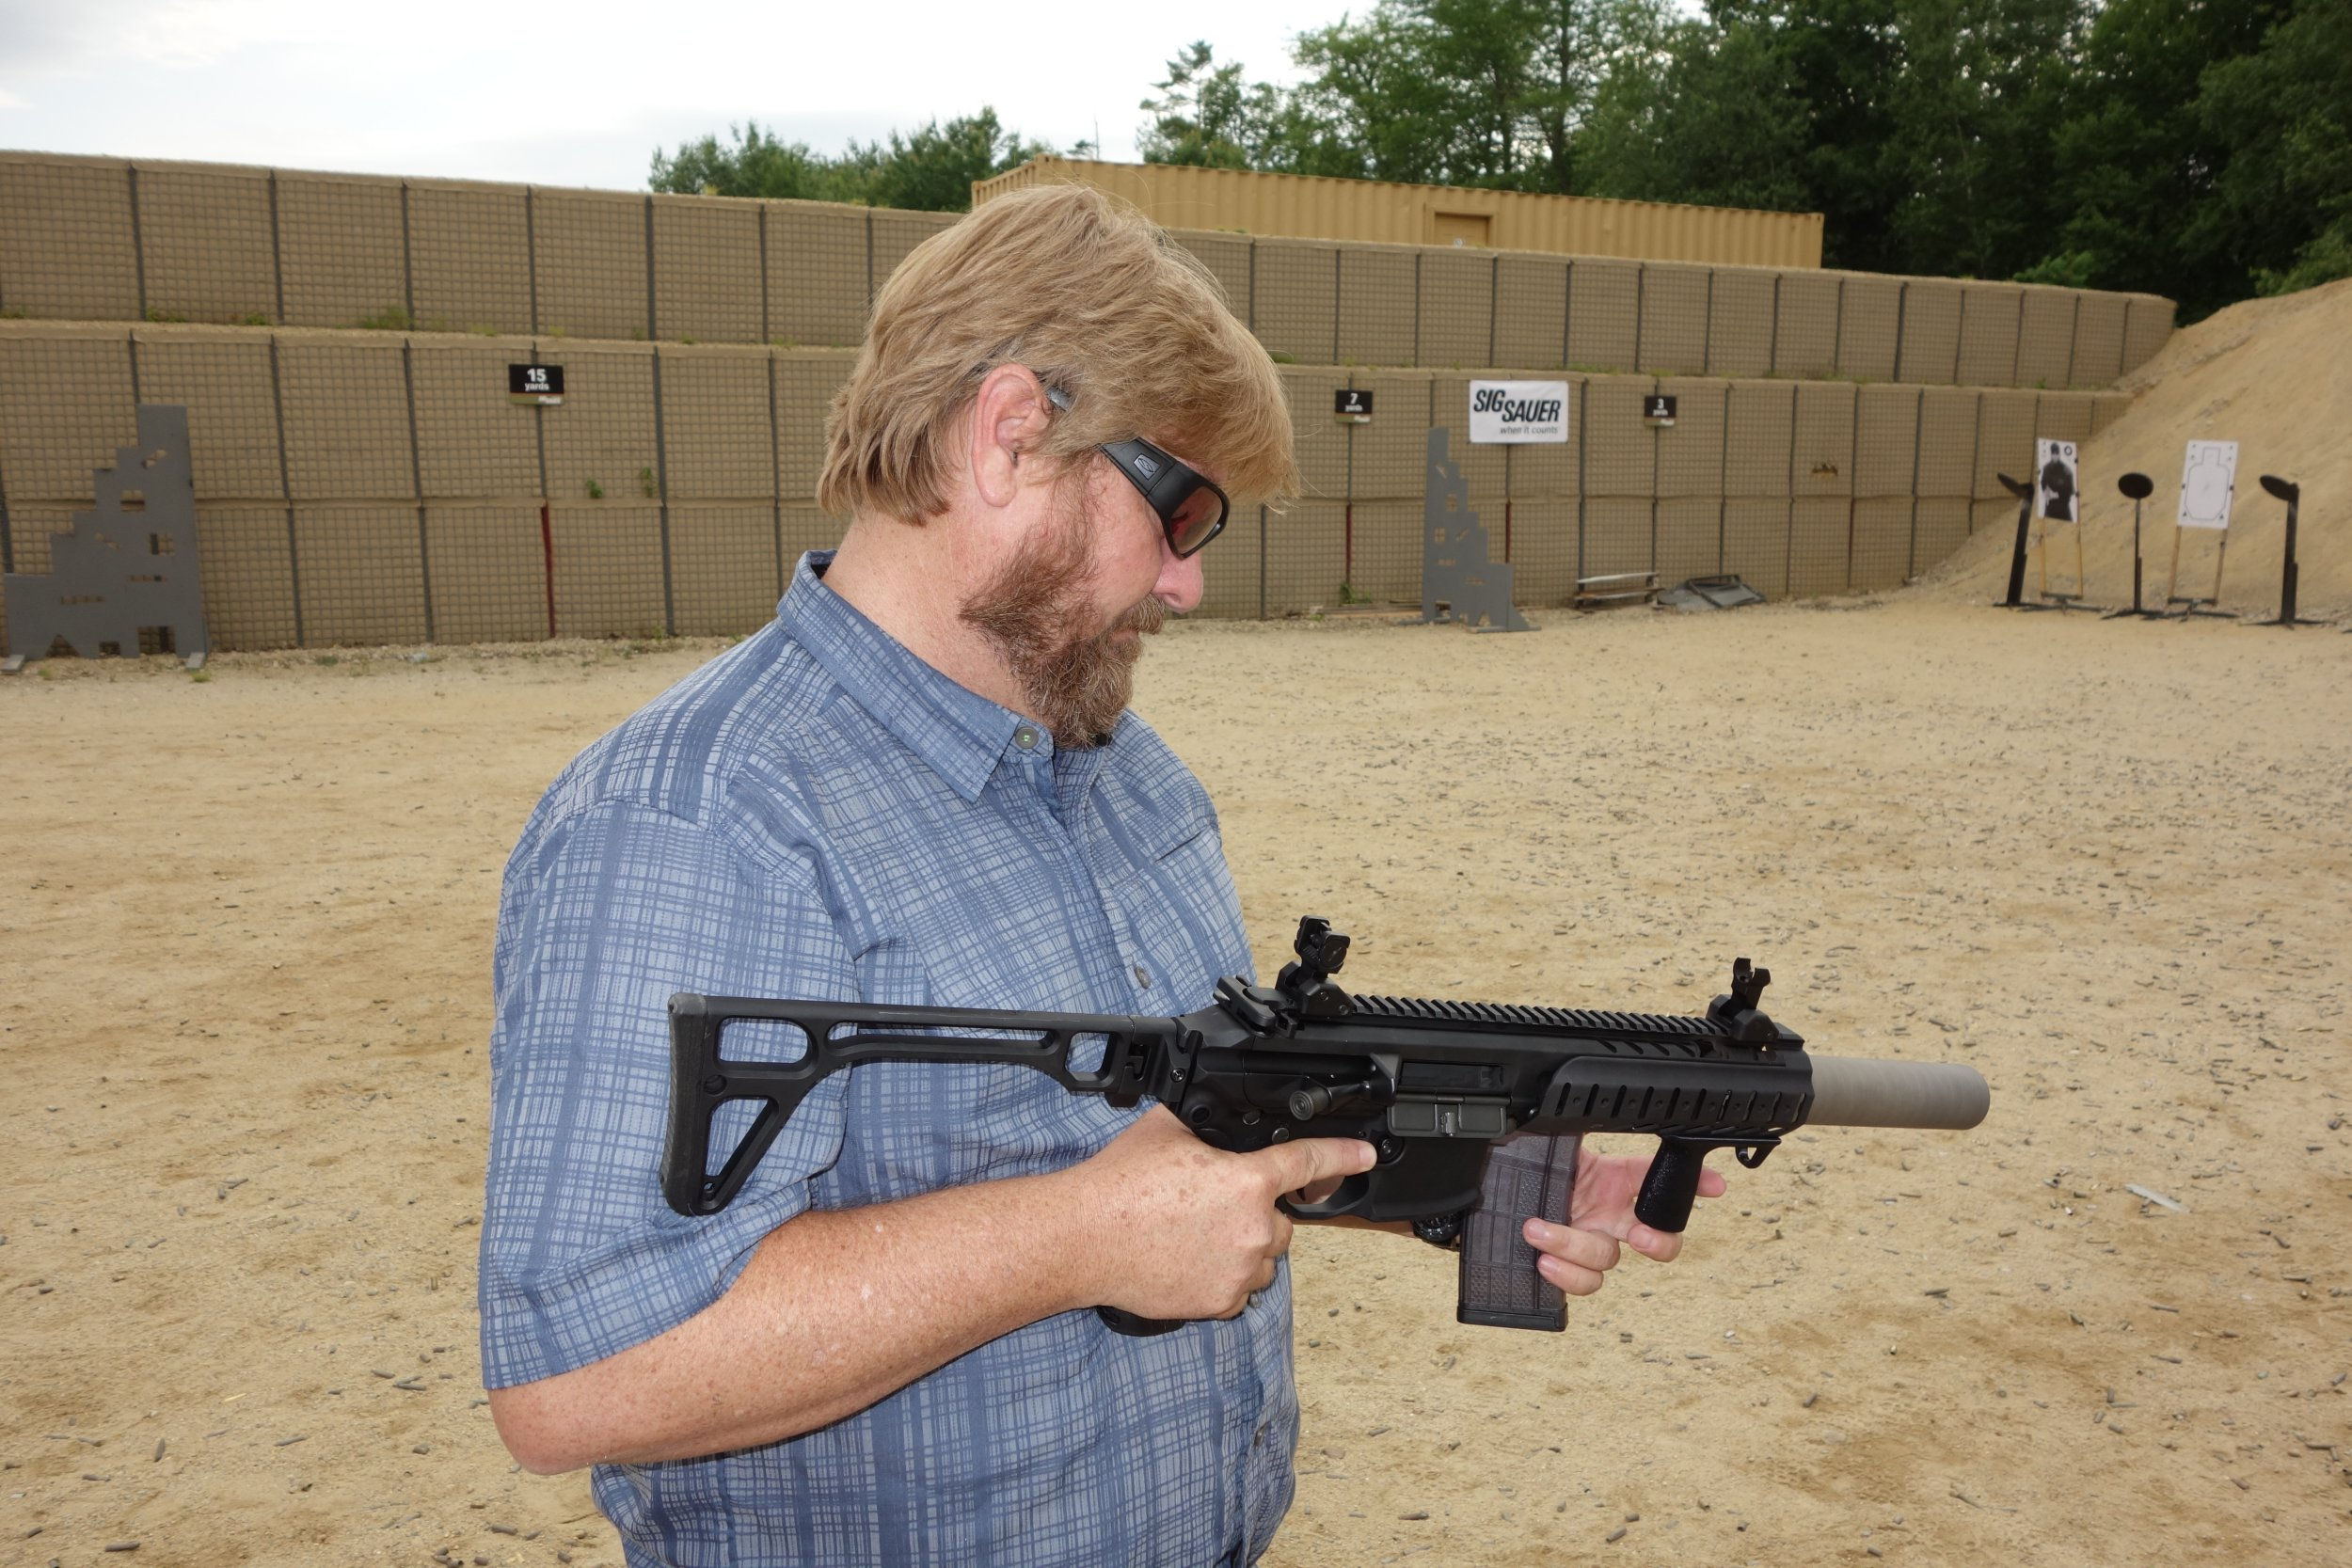 SIG SAUER SIG MCX Multi Caliber AR Assault Rifle Carbine SBR 300 Blackout 300BLK Suppressed SIG SAUER Academy New Media Writers Event 2014 David Crane DefenseReview.com DR 4 SIG MCX LVAW (Low Visibility Assault Weapon) Black Mamba Suppressed 300 Blackout (300BLK) Piston AR Assault SBR/PDW (Short Barreled Rifle/Personal Defense Weapon) Fired on Full Auto and Semi Auto with Subsonic and Supersonic Ammo During SIG SAUER New Media Writers Event (Video!)